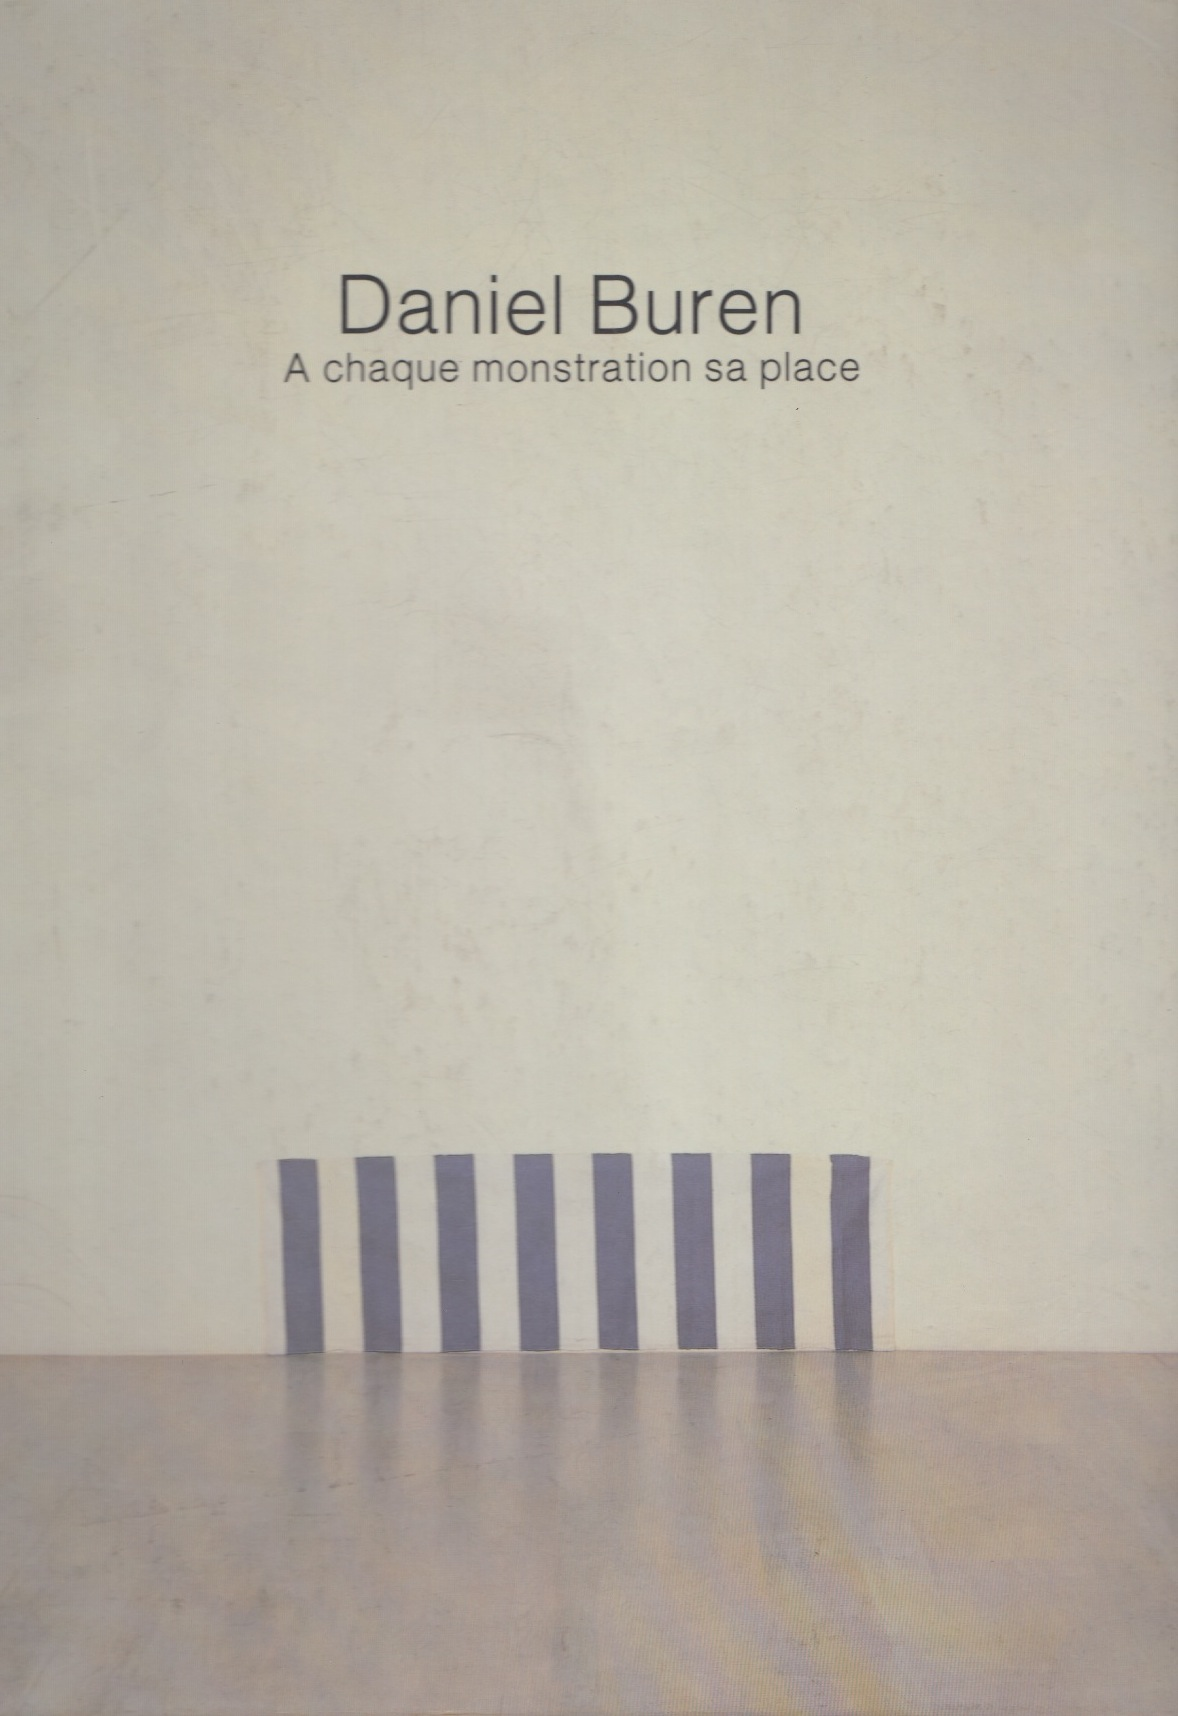 Daniel Buren A chaque monstration sa place